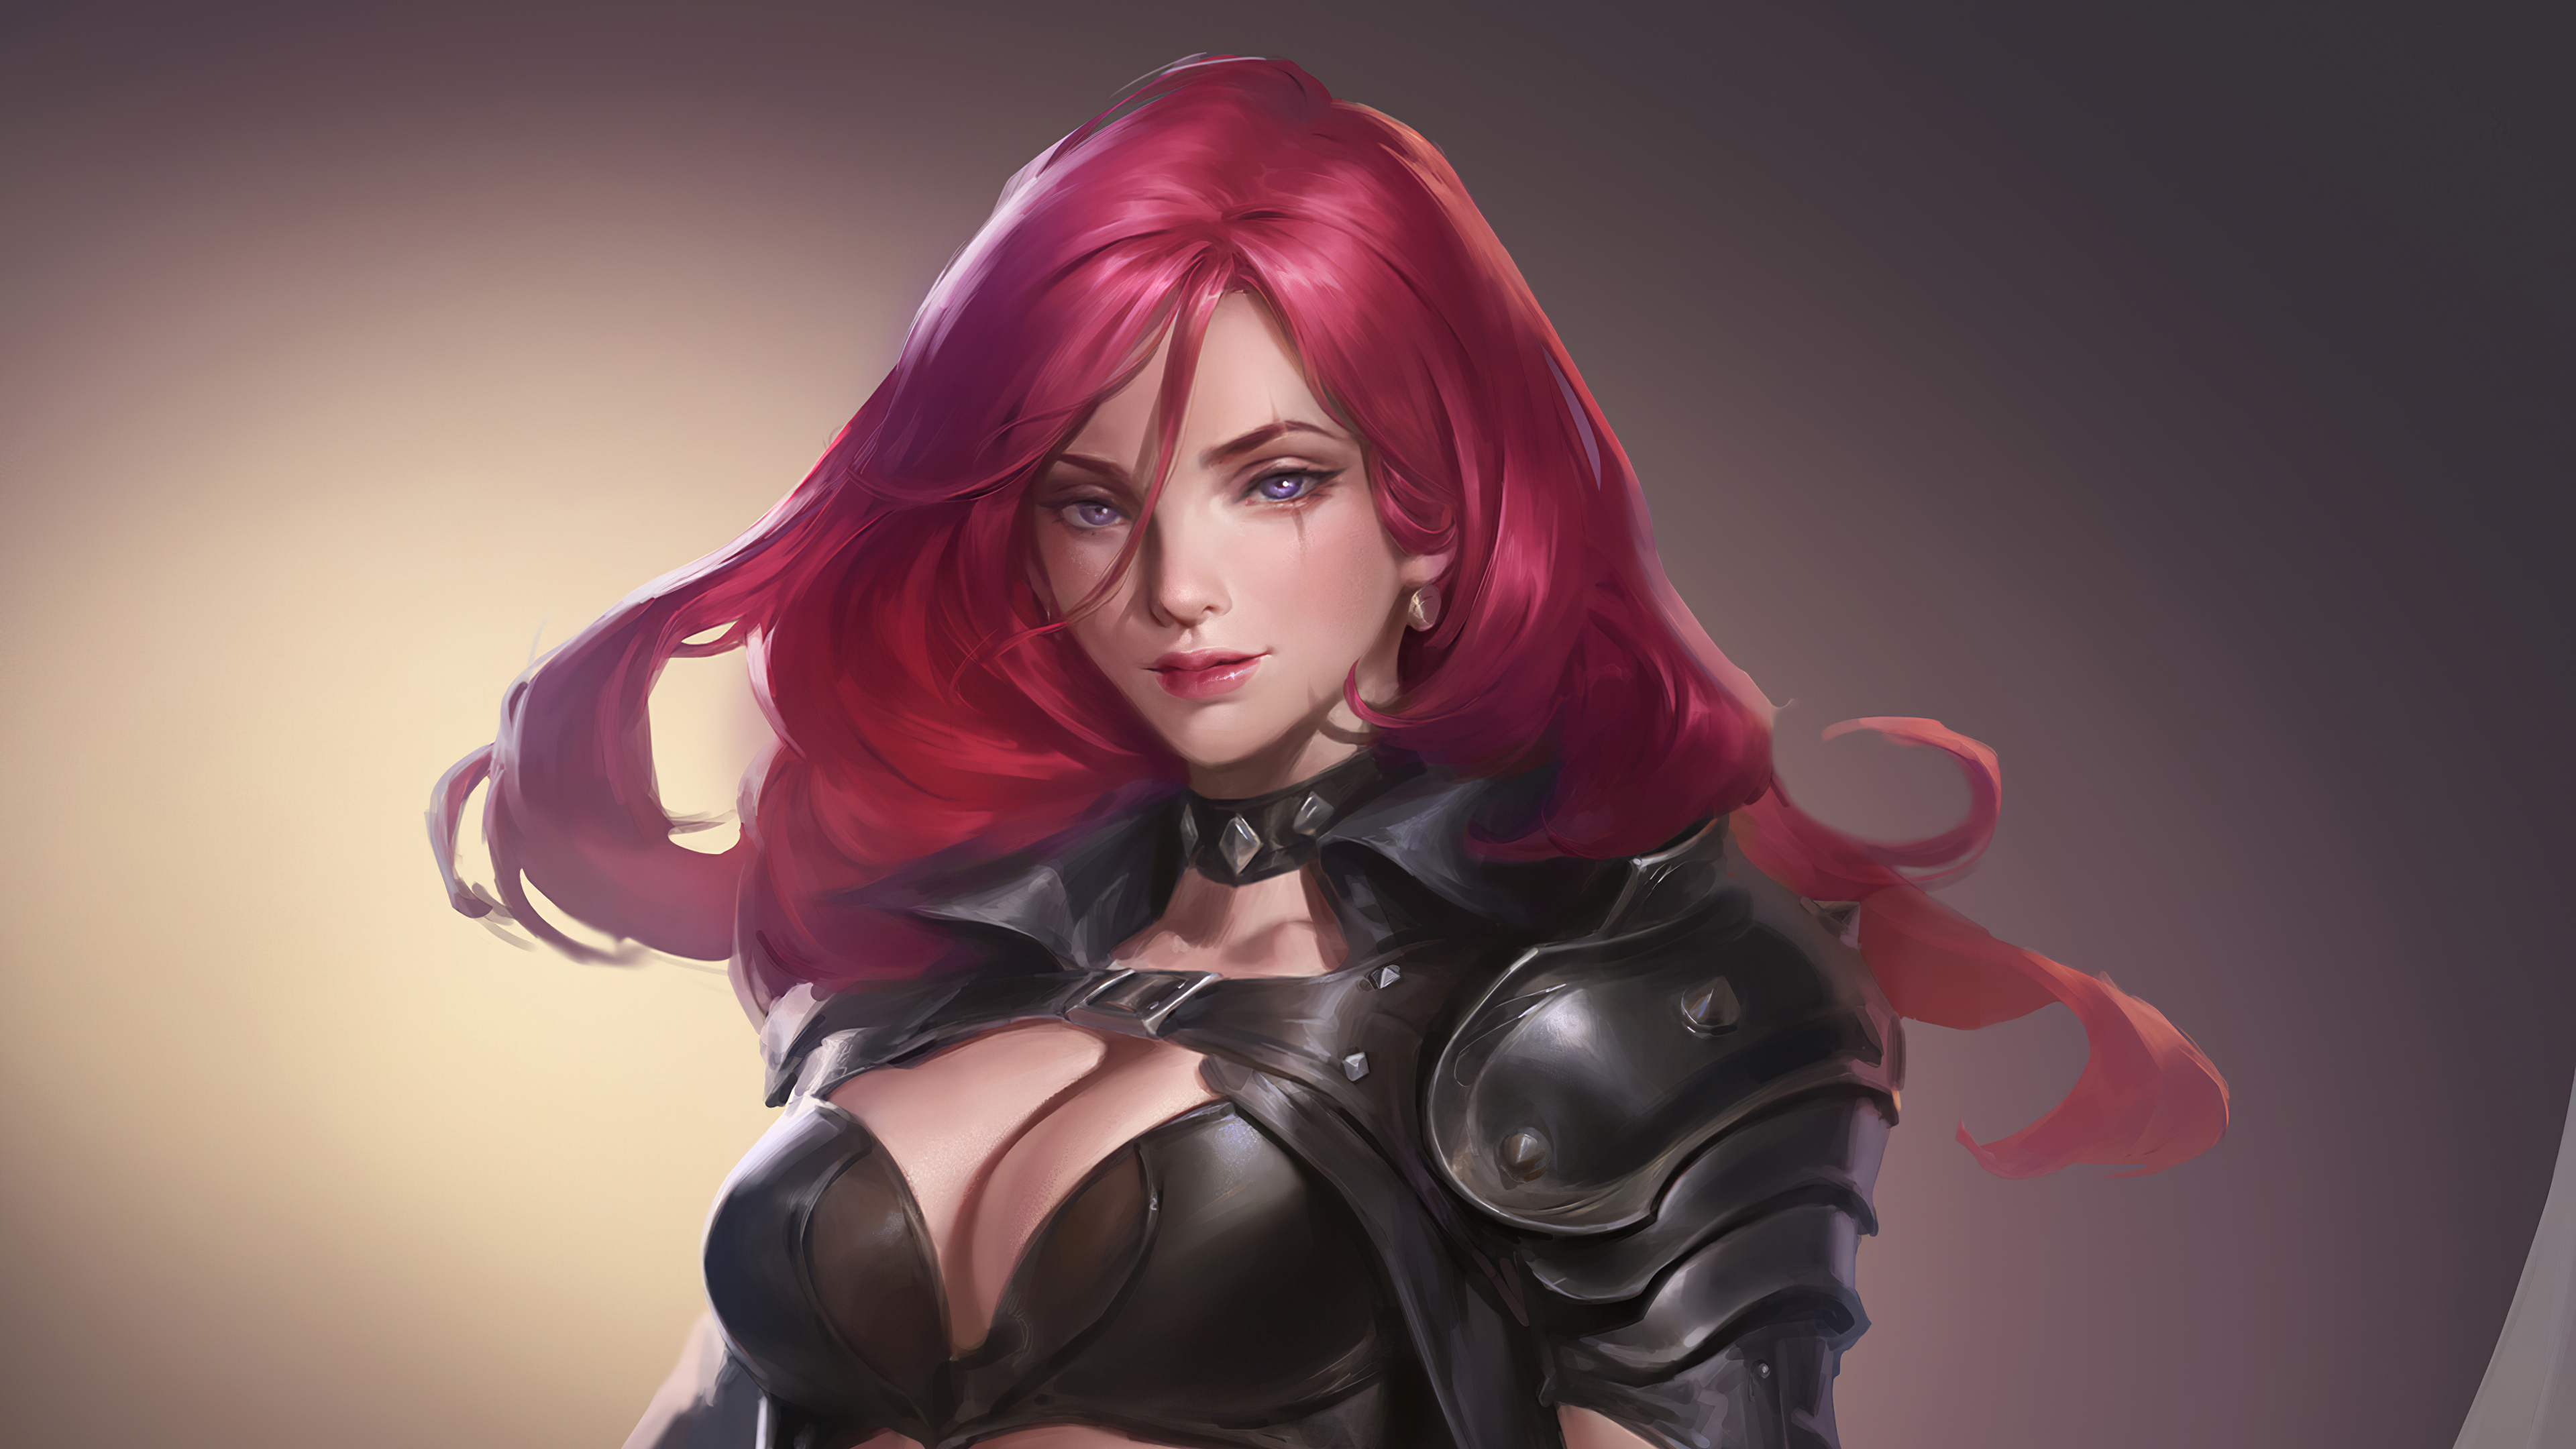 General 3840x2160 artwork video game characters video game girls redhead League of Legends fantasy girl cleavage katarina (league of legends)